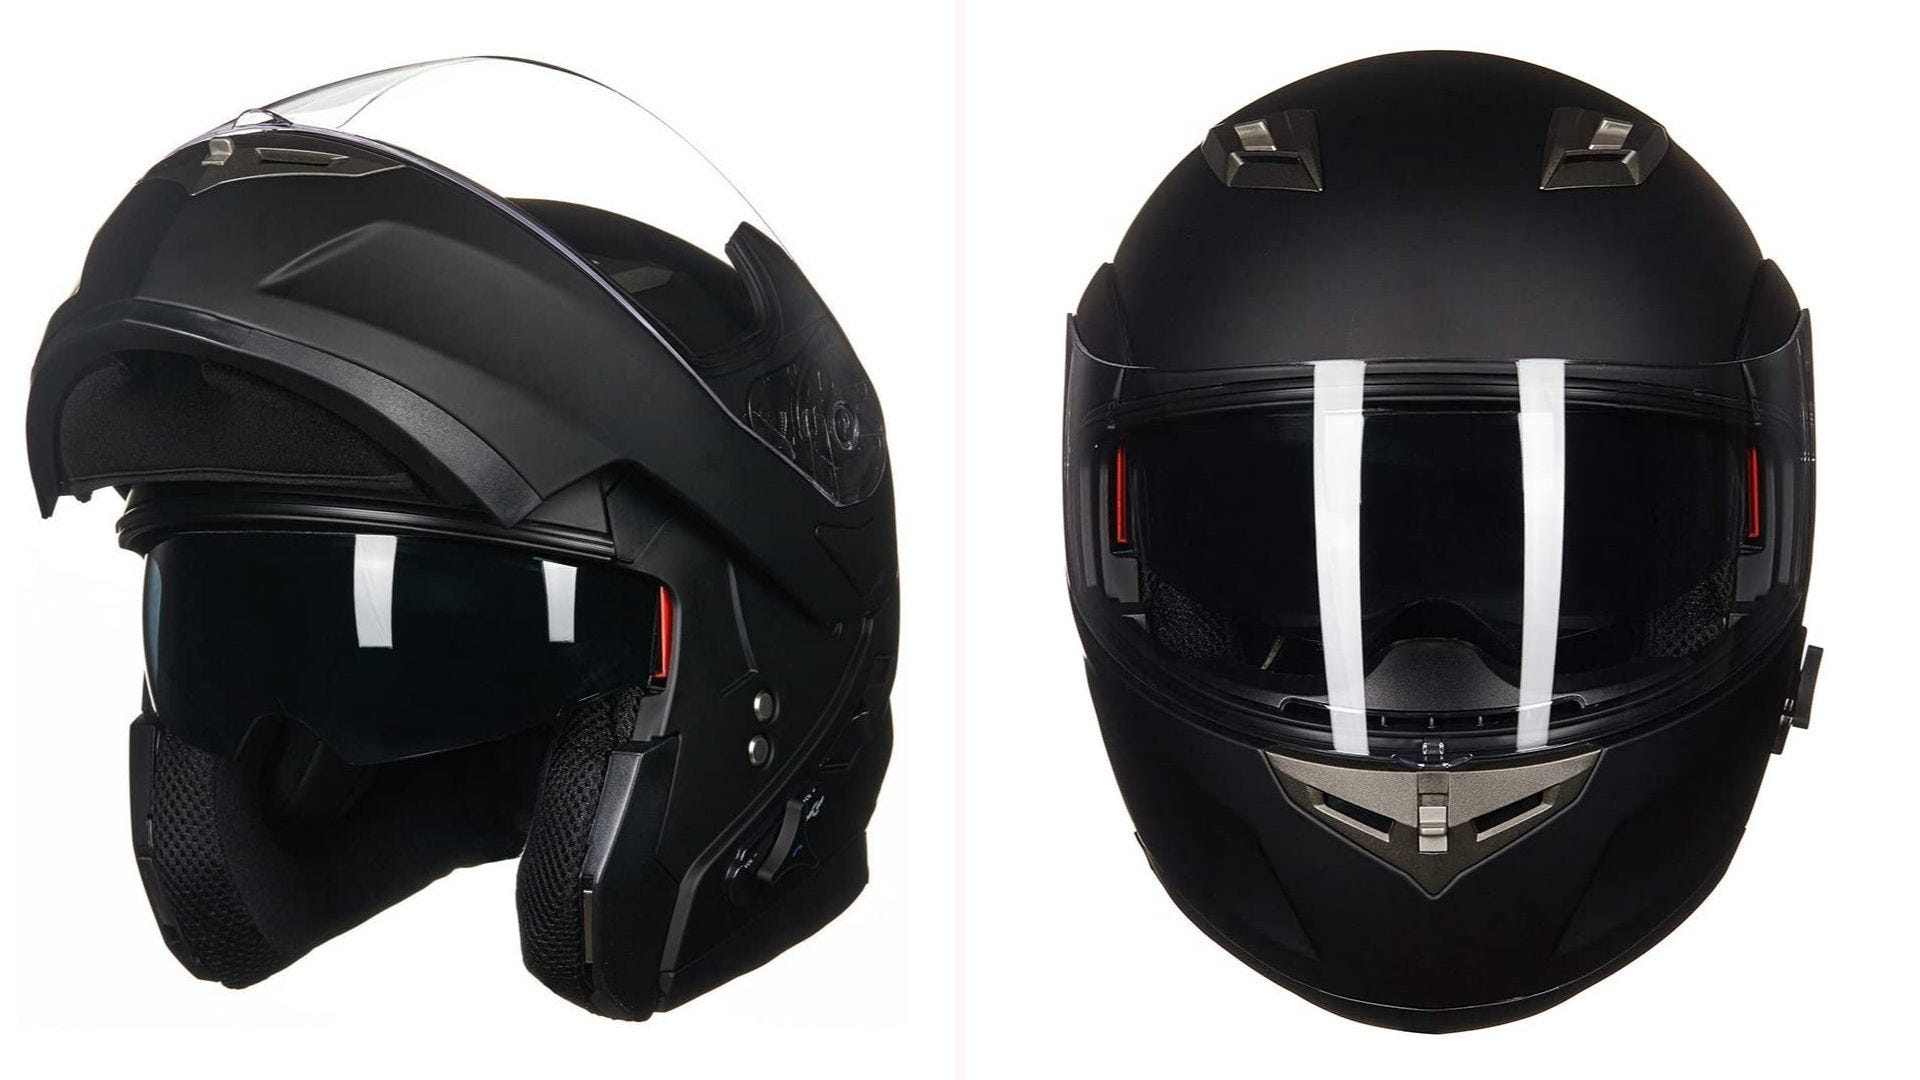 On the left, a matte black full-face helmet with a Blueetooth button on the side of the face and the face guard pulled up. On the right, a front view of the closed helmet.